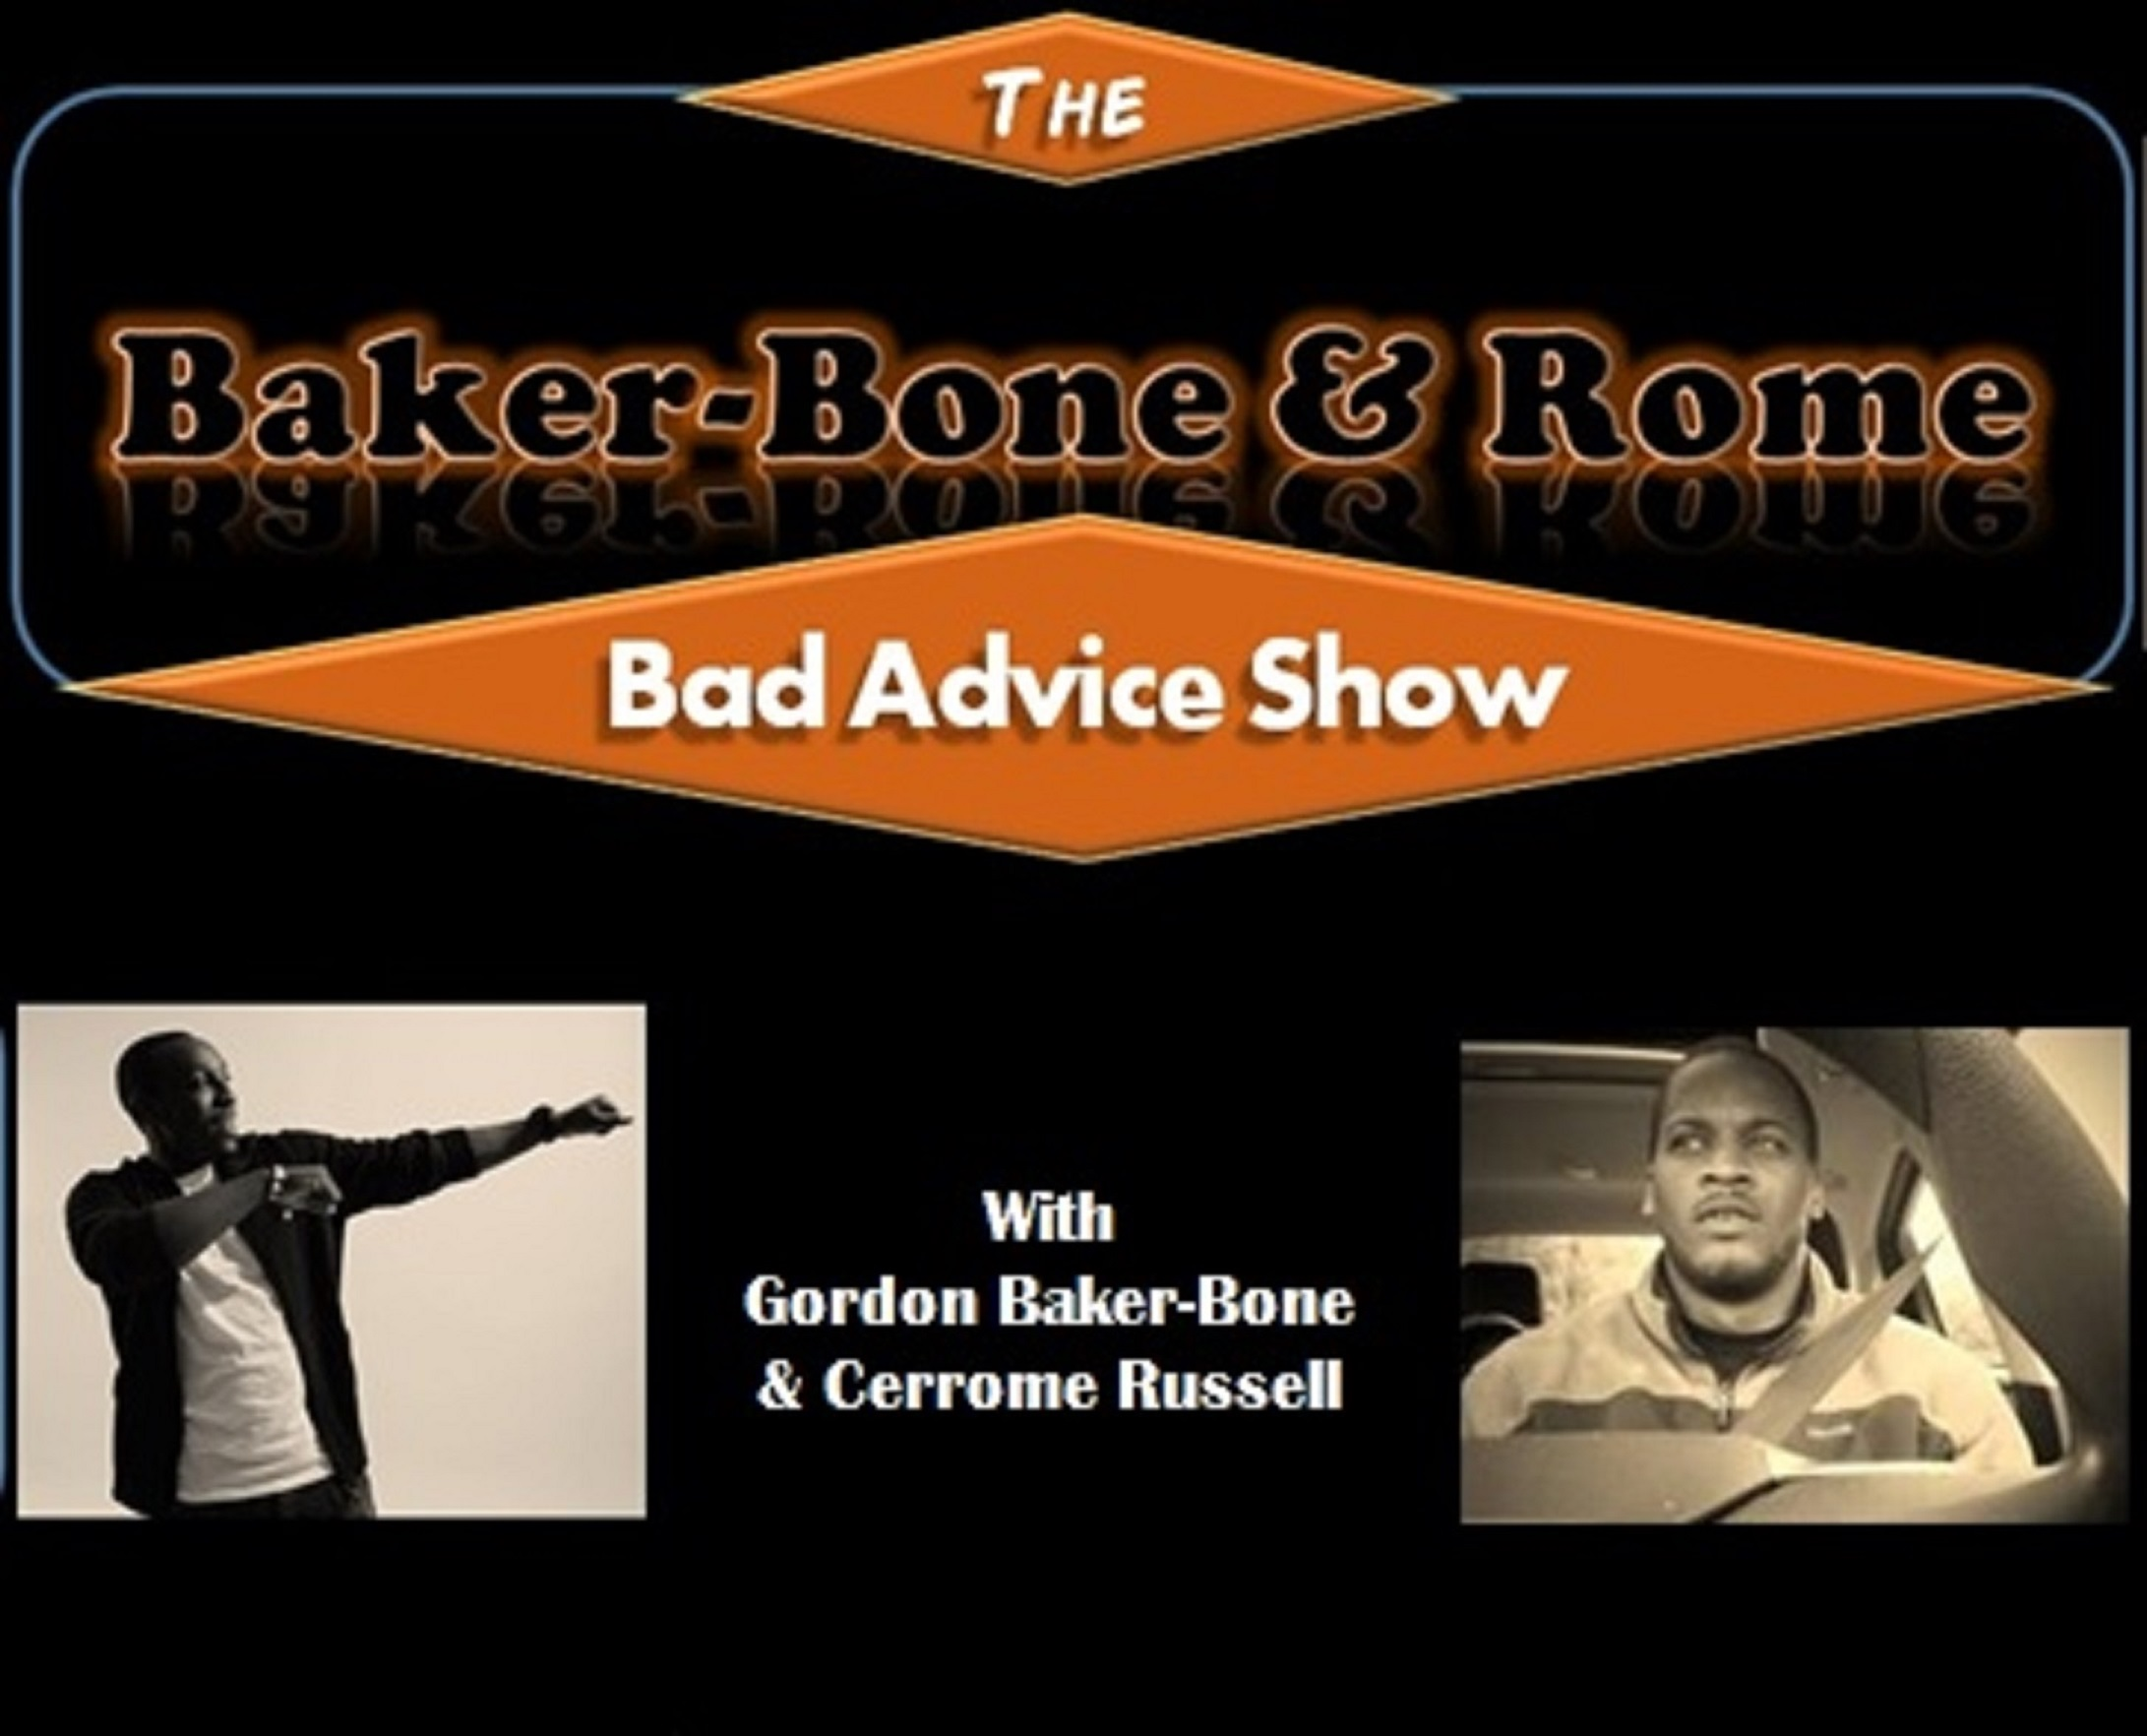 Bad Advice Show